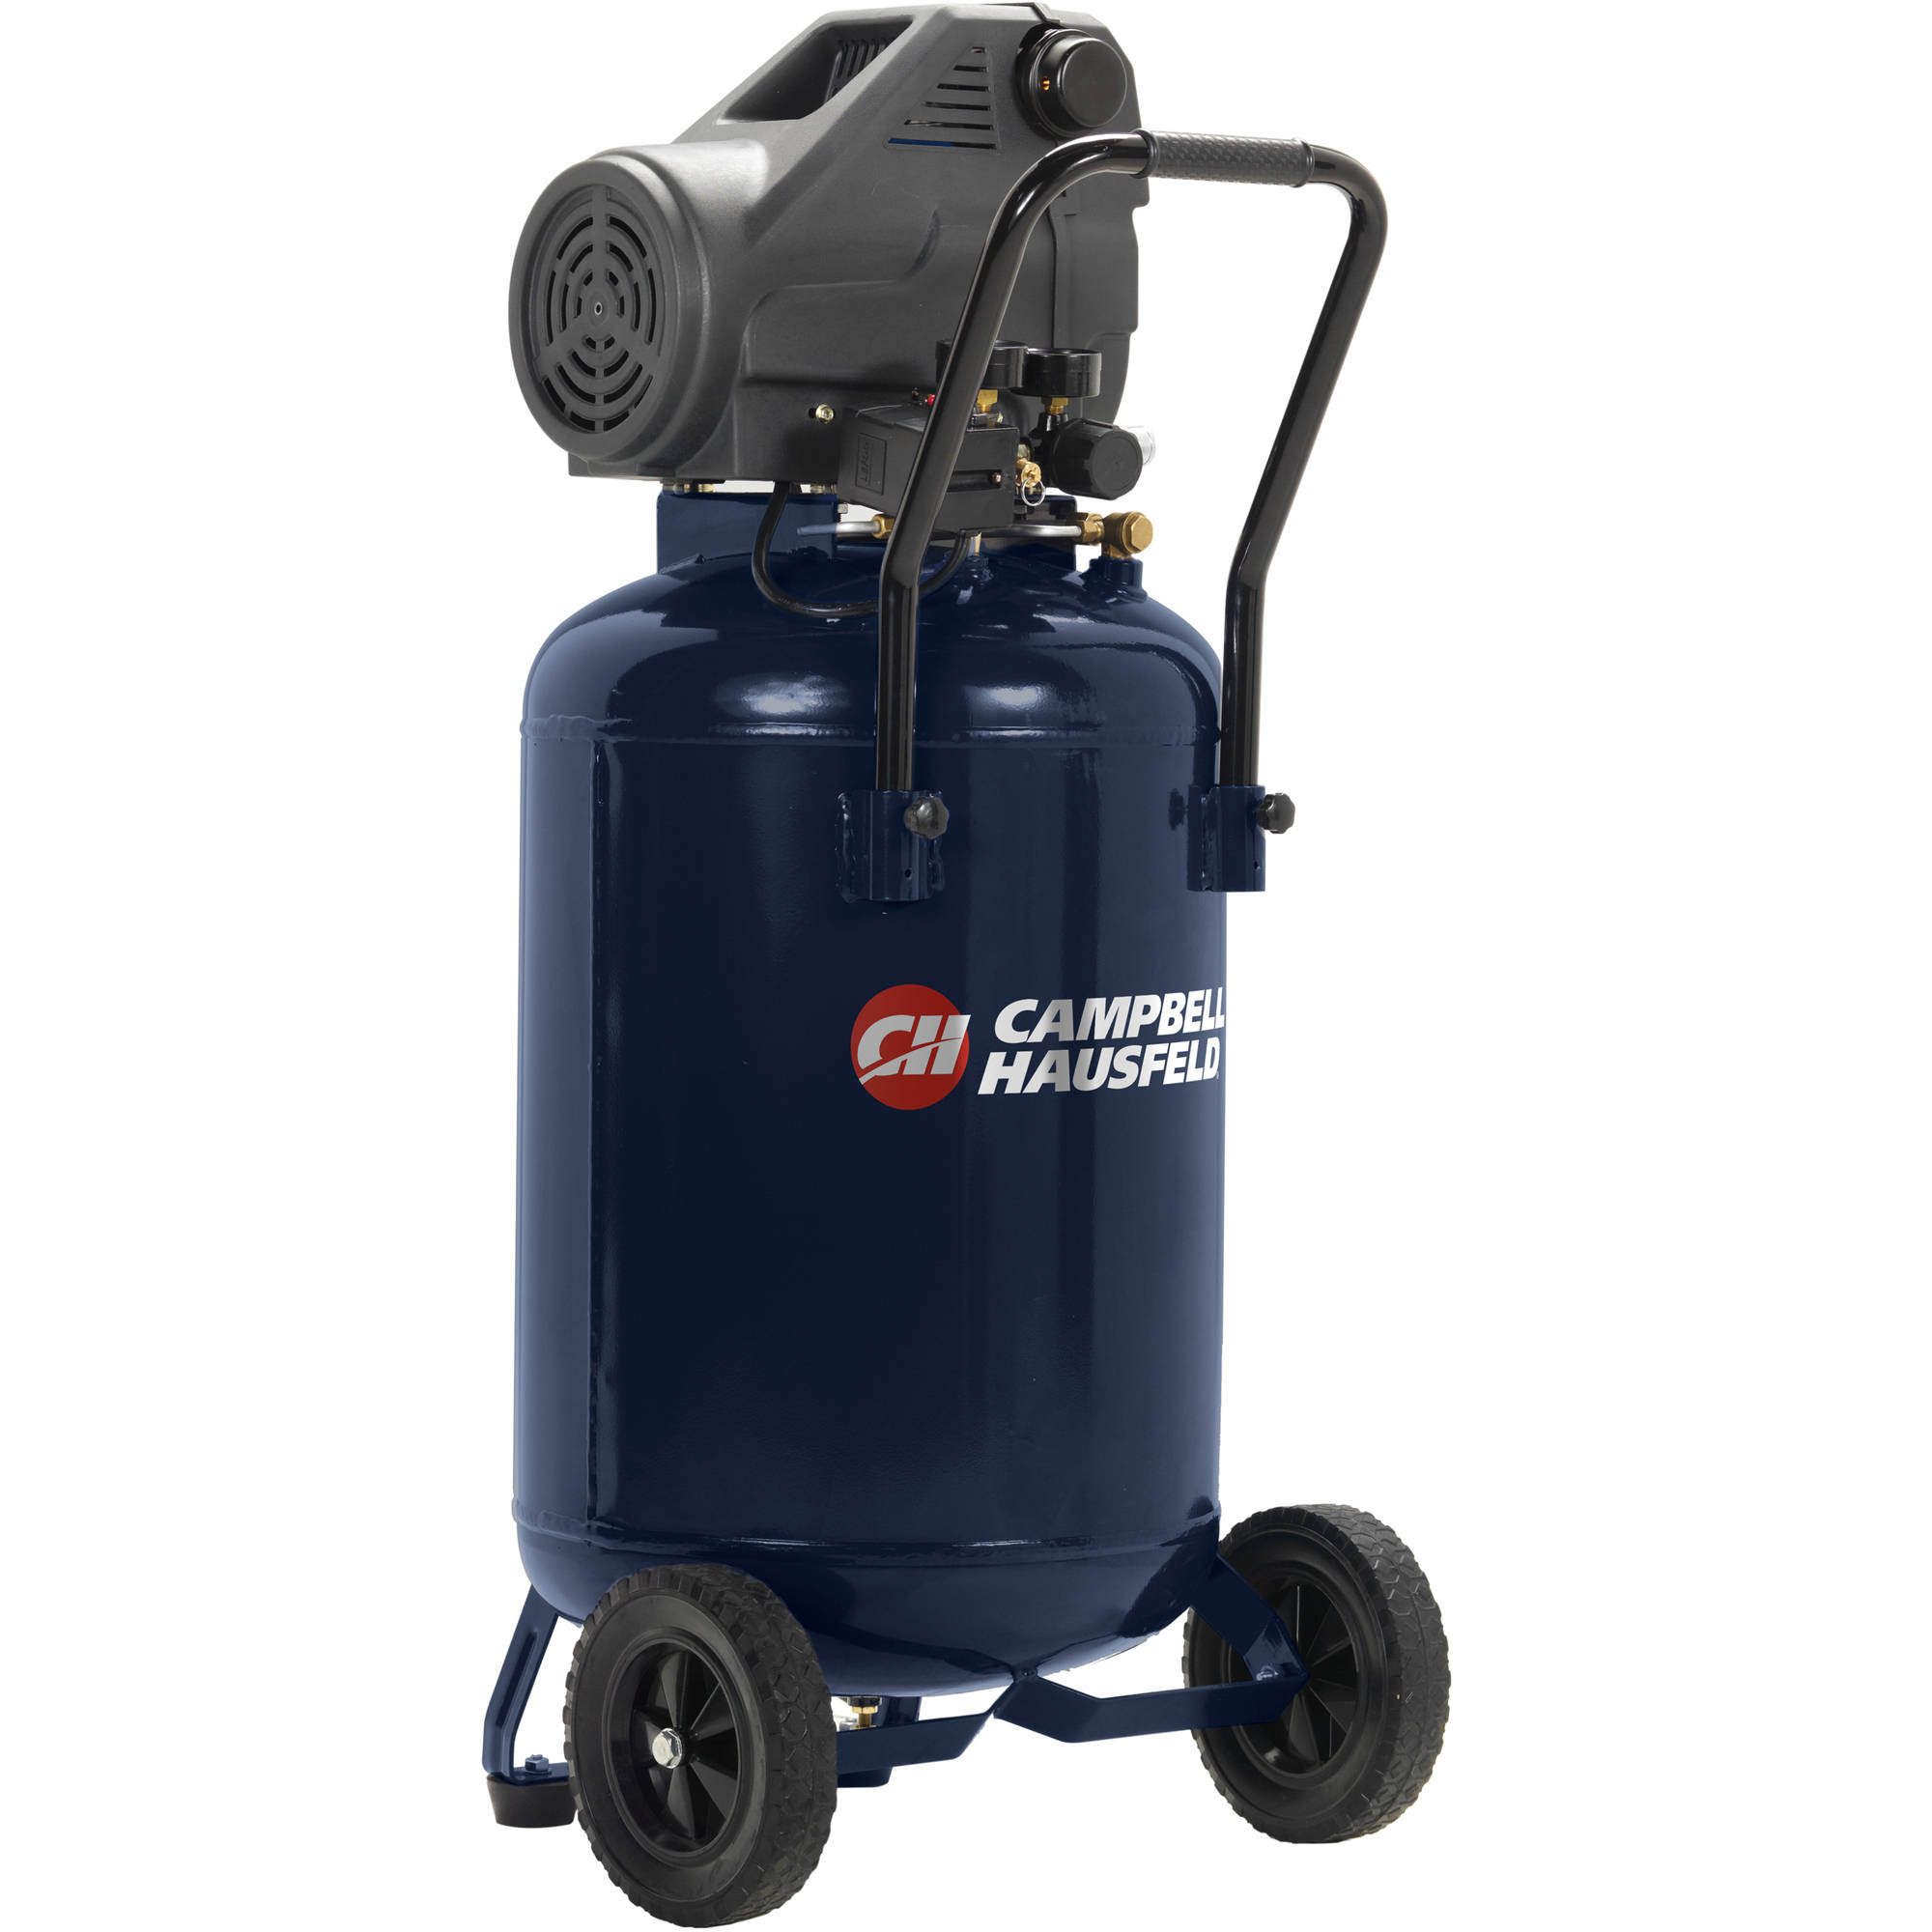 Air Compressor Dc200100 20 Gallon Oil Free Home Workbench Handles Paint Spraying